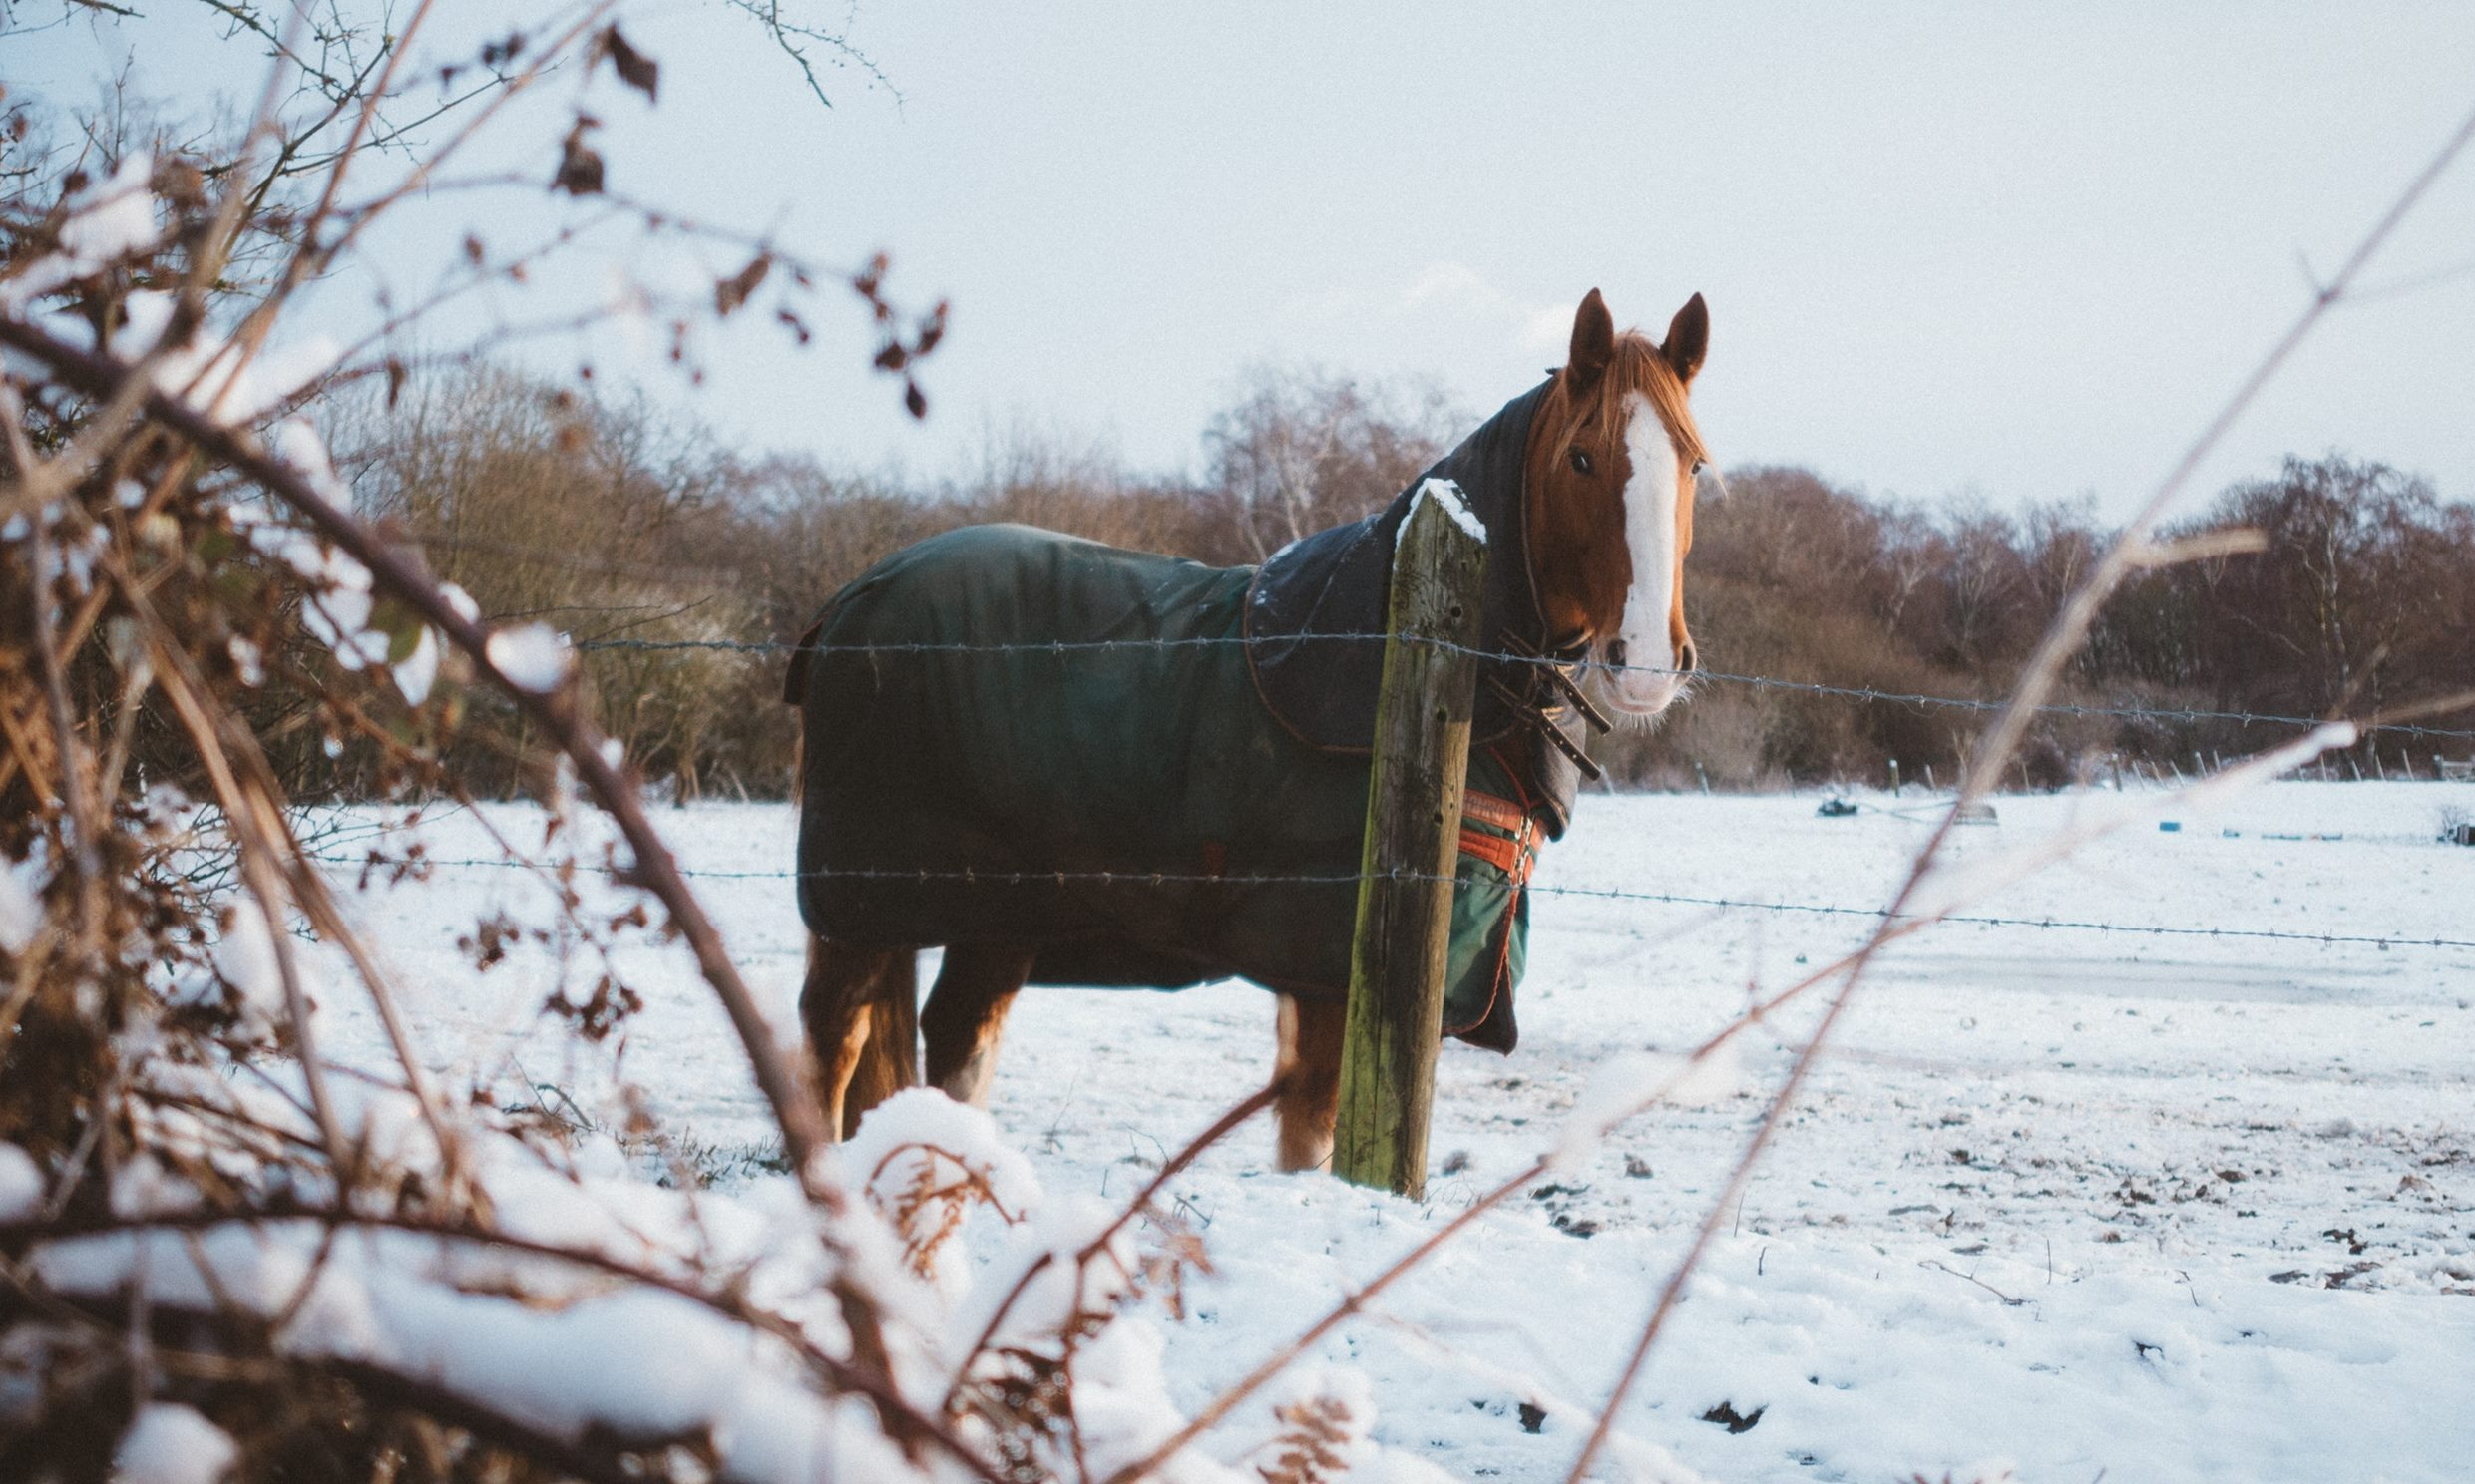 How To Clean And Waterproof Horse Blankets